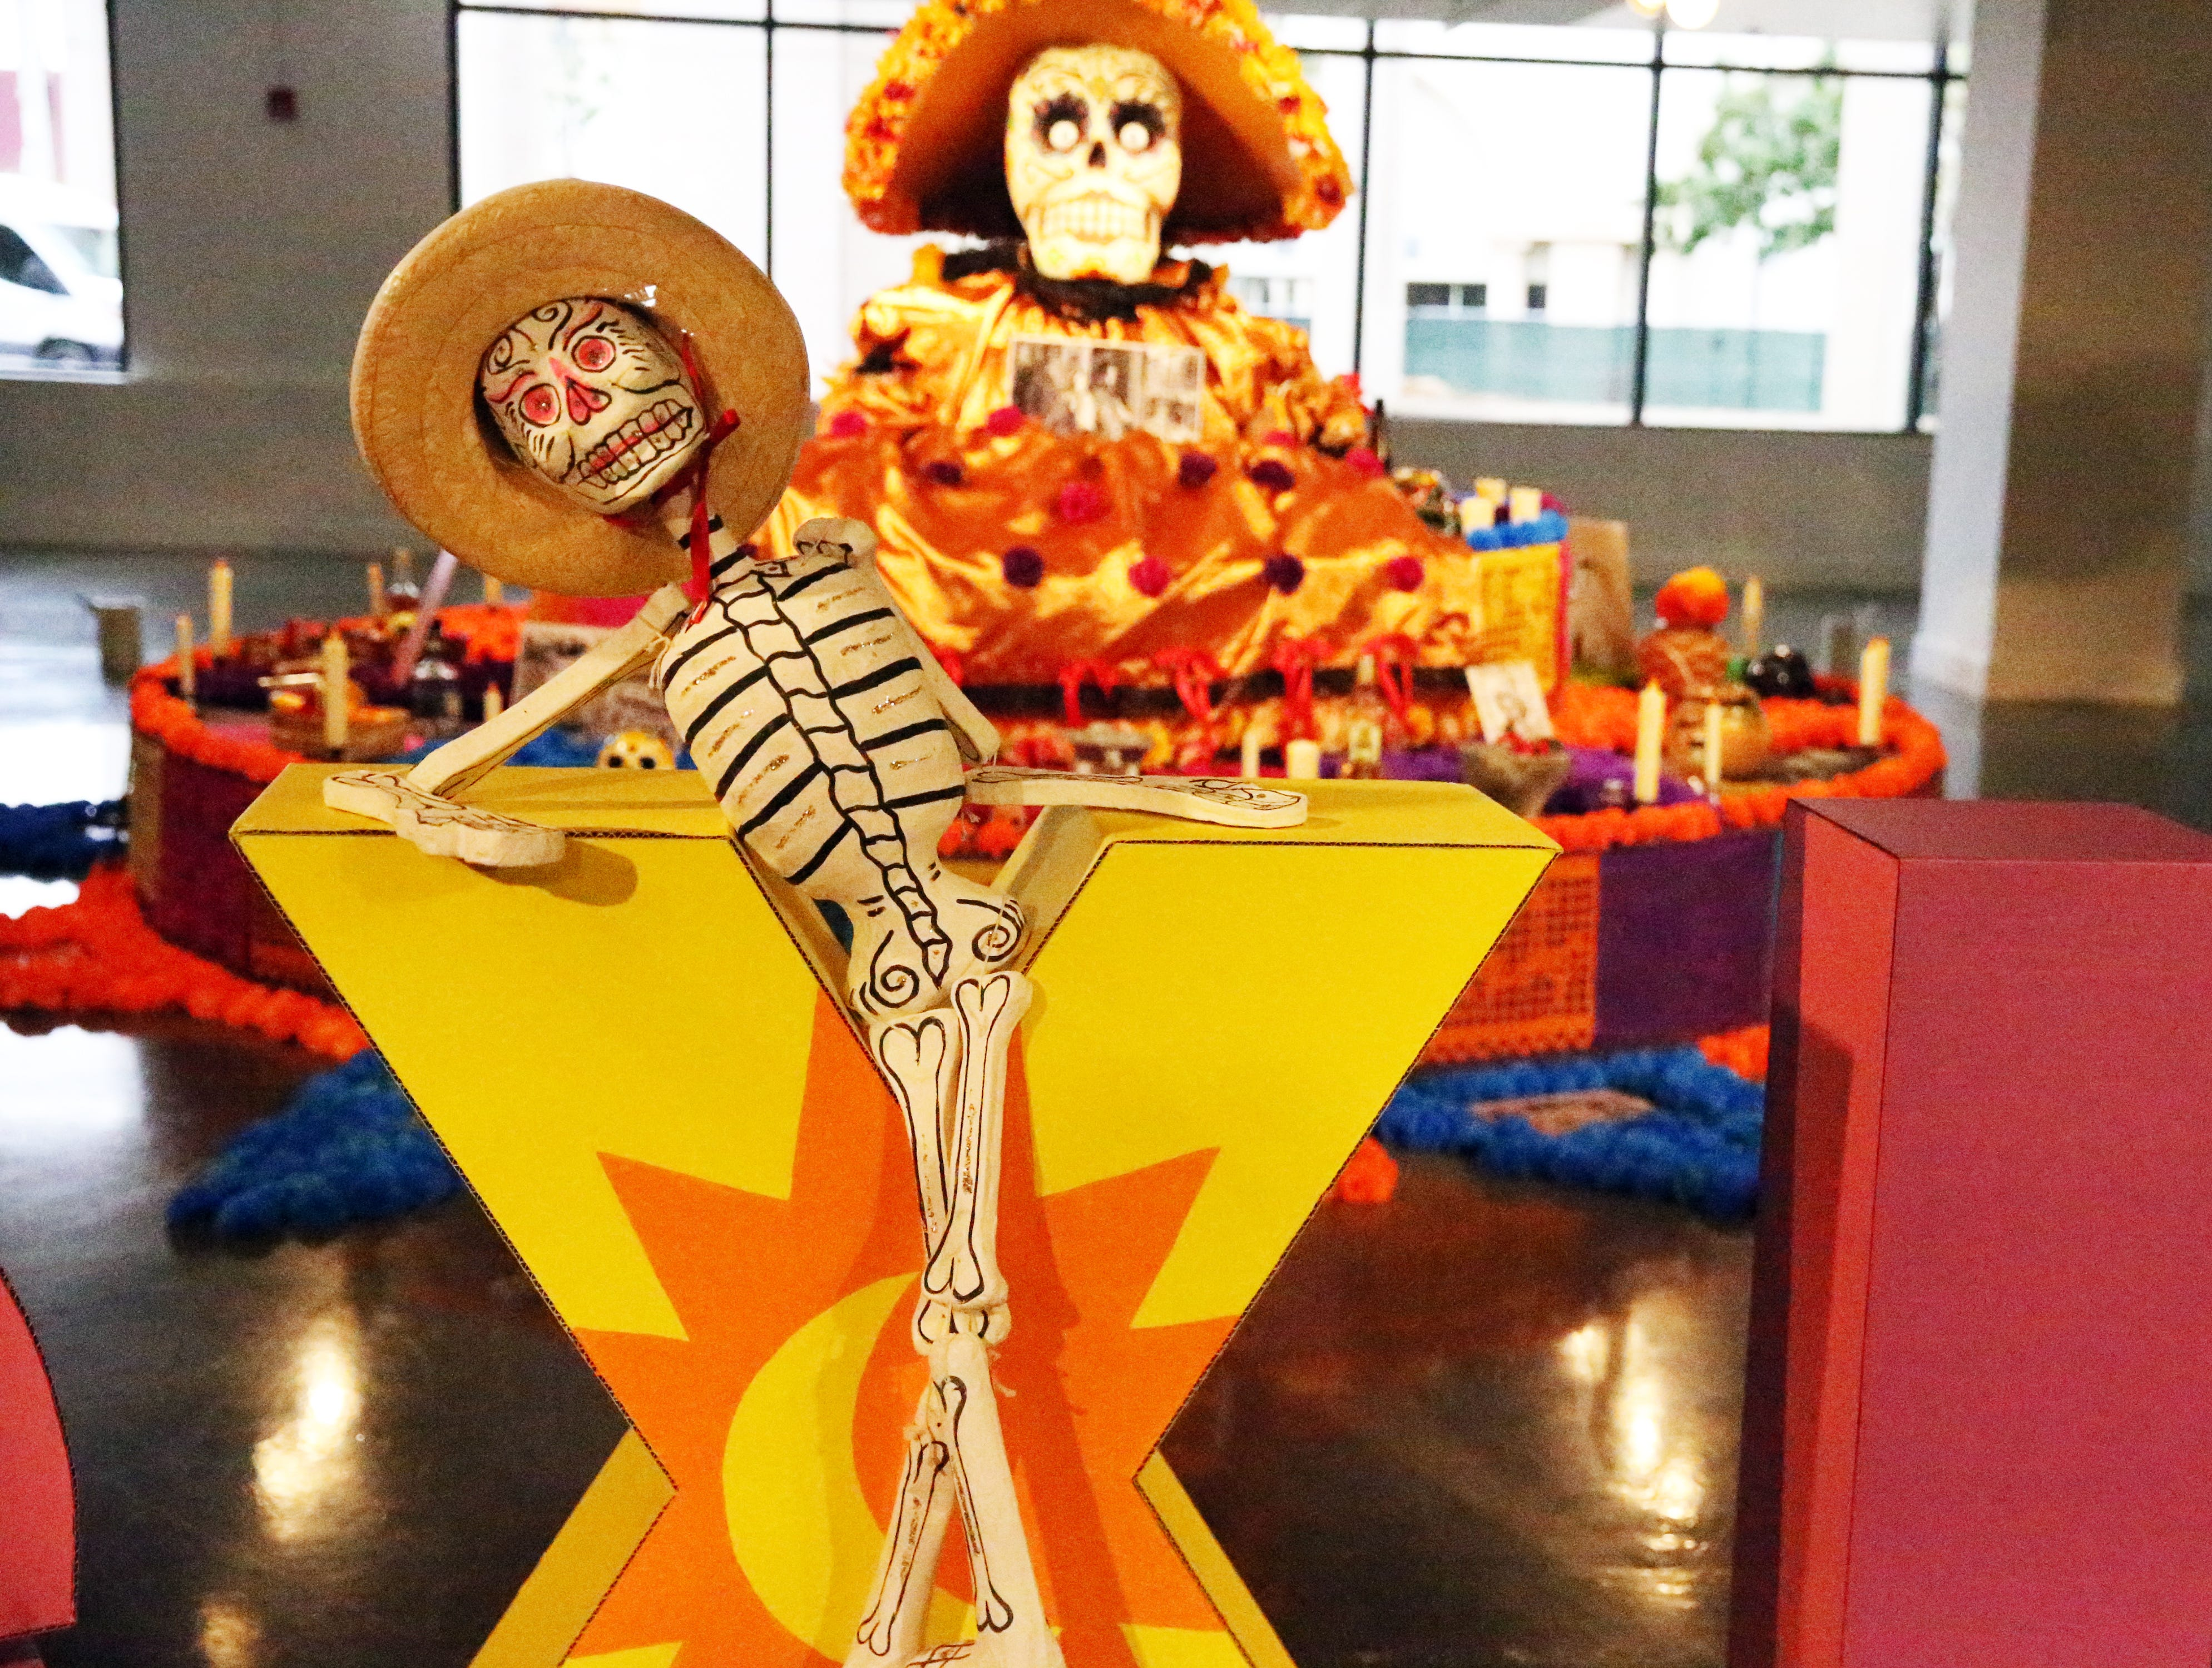 Part of the Day of the Dead altar at the El Paso Museum of Art.